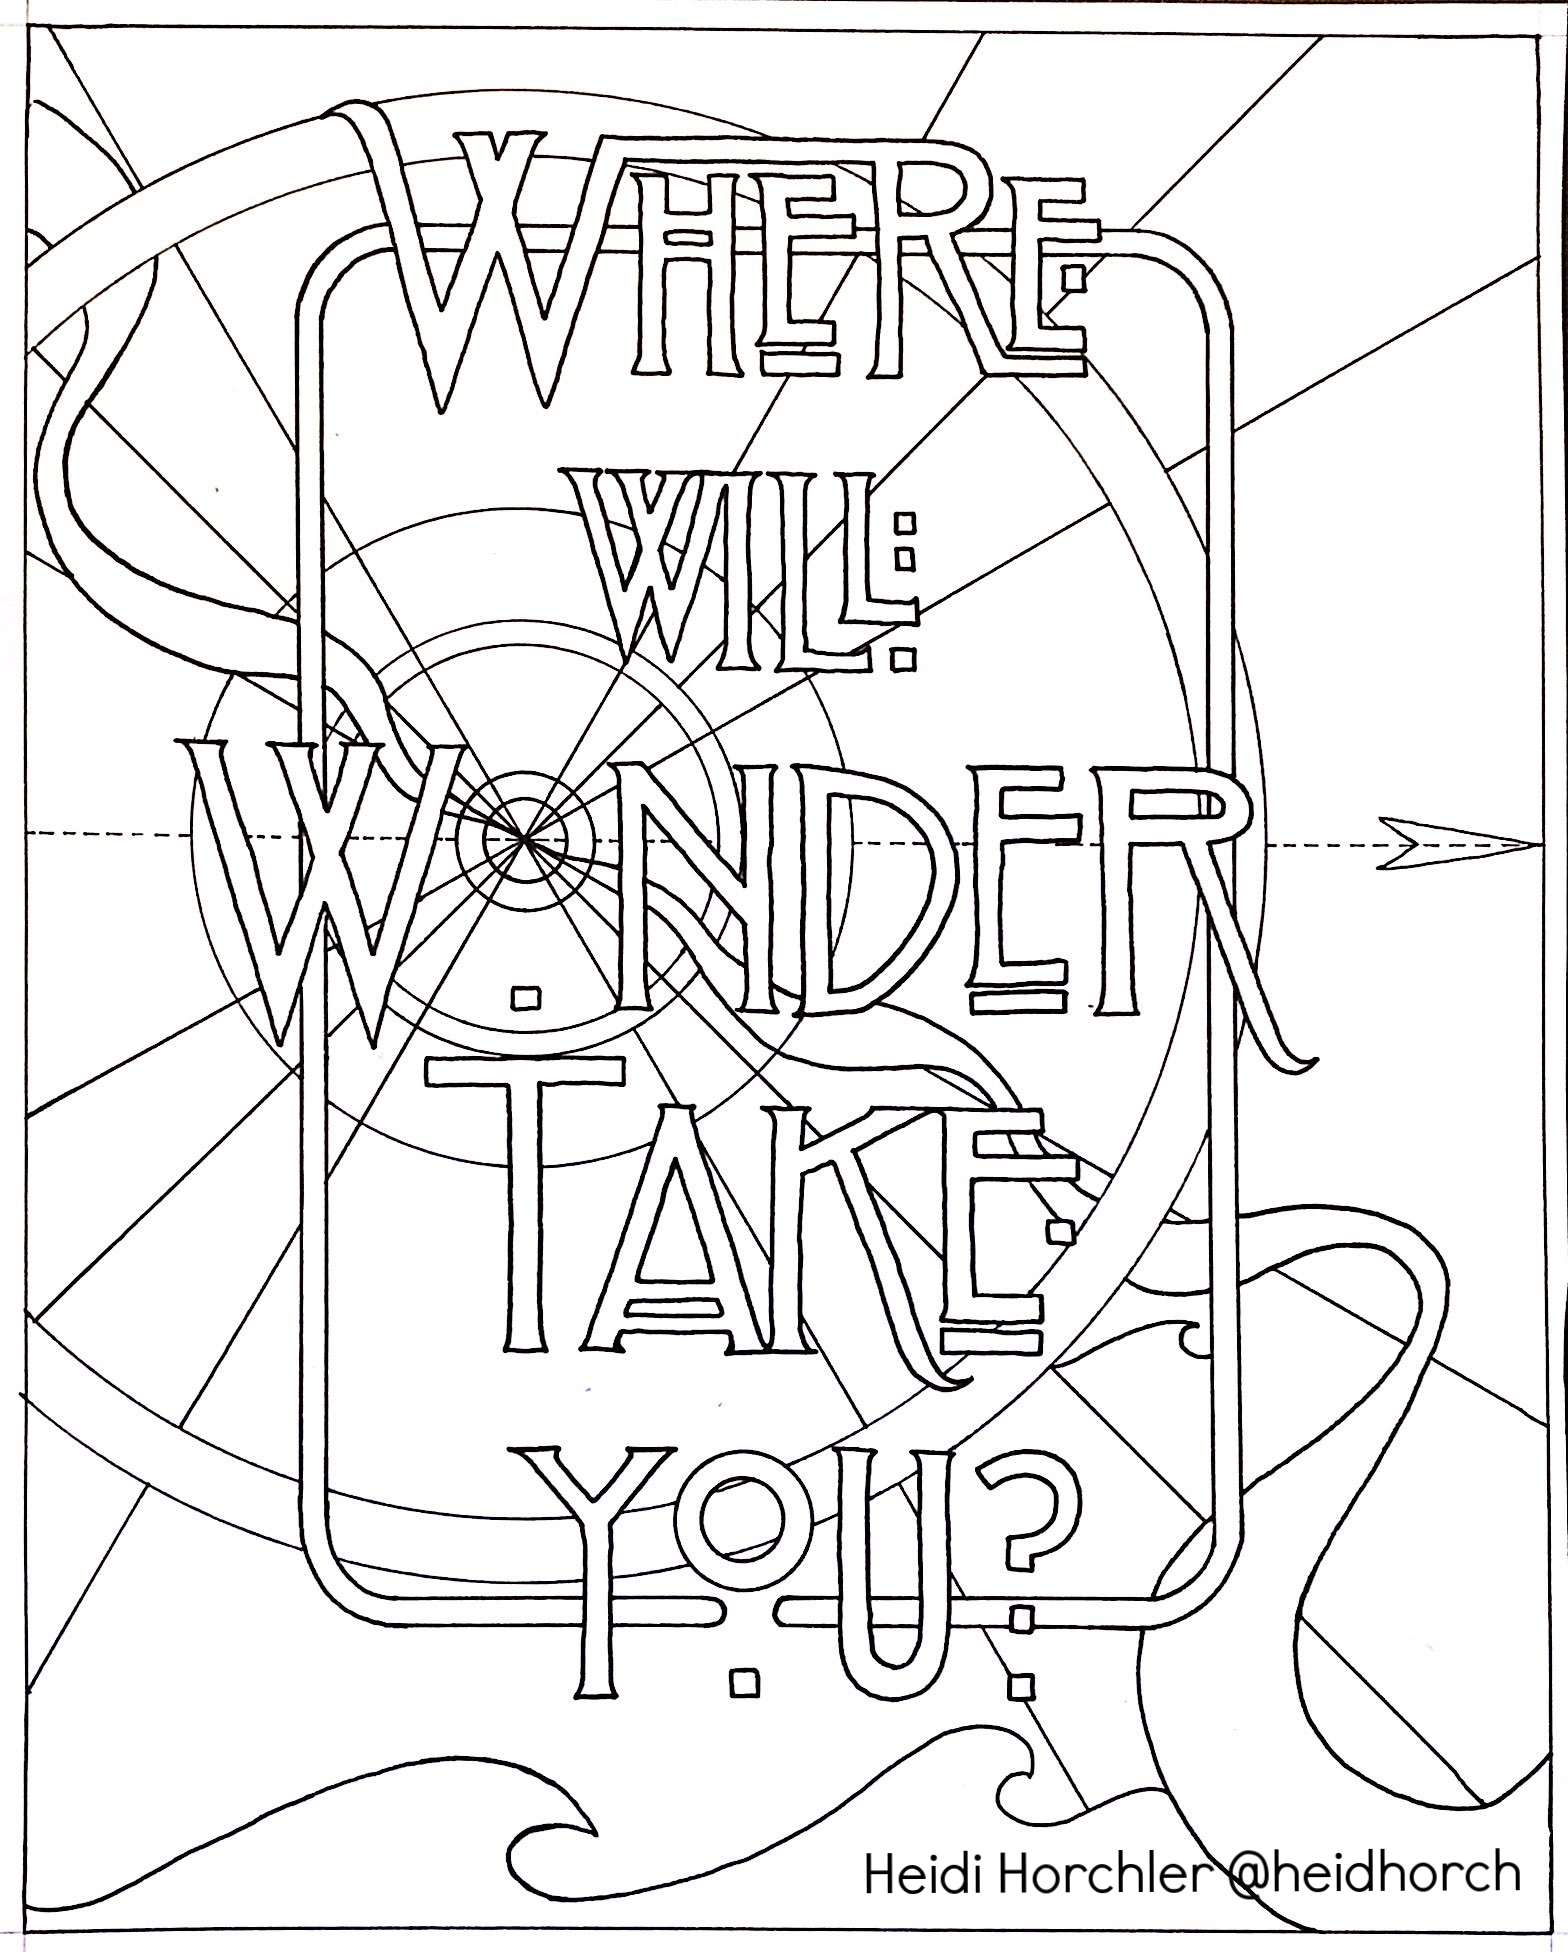 Wonder - Daydream Odyssey coloring page